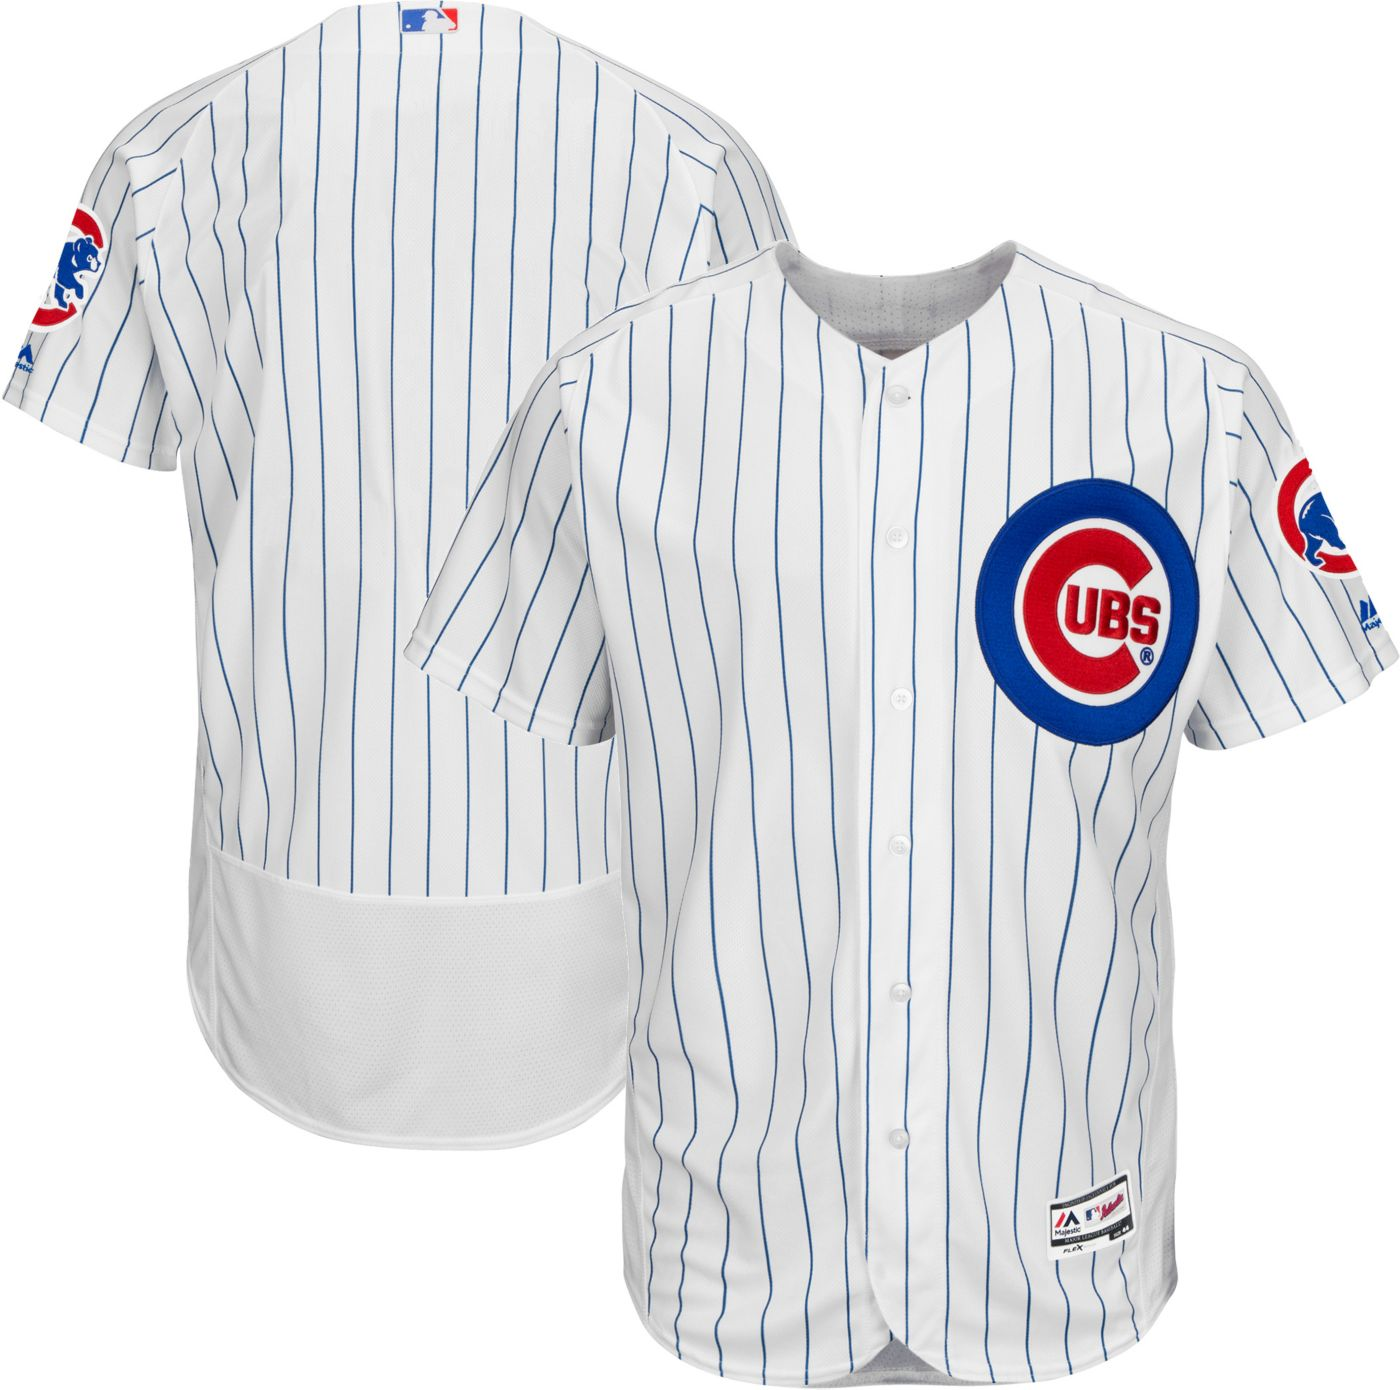 Majestic Men's Authentic Chicago Cubs Home White Flex Base On-Field Jersey